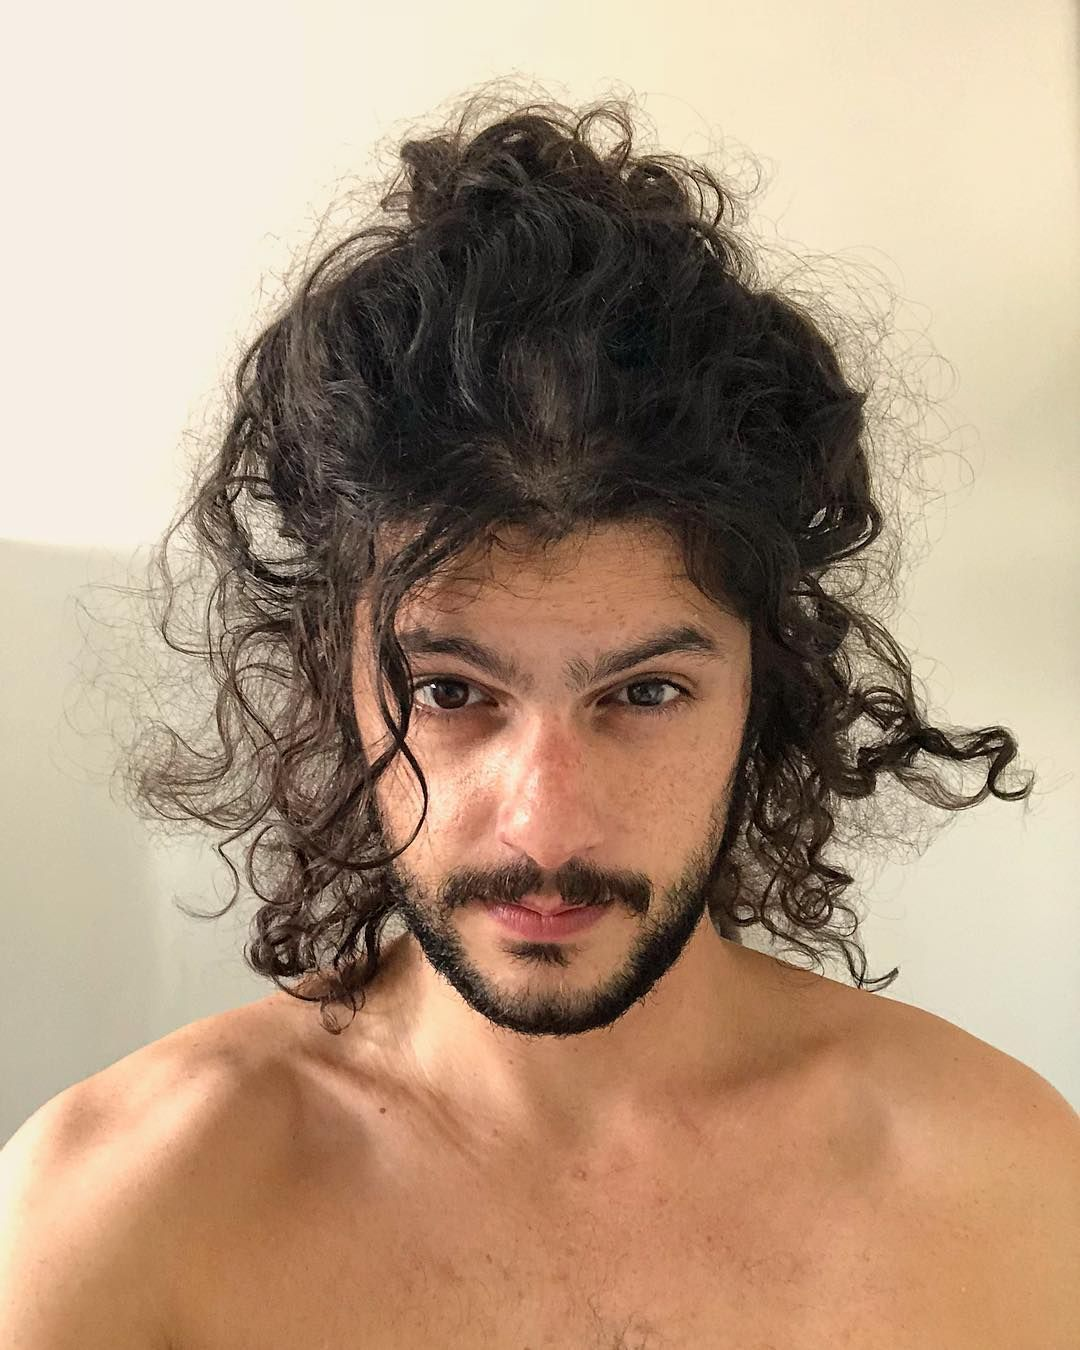 Estilo Elba Braidedhairstylewithbangs Long Face Hairstyles Long Curly Hair Men Long Hair Styles Men